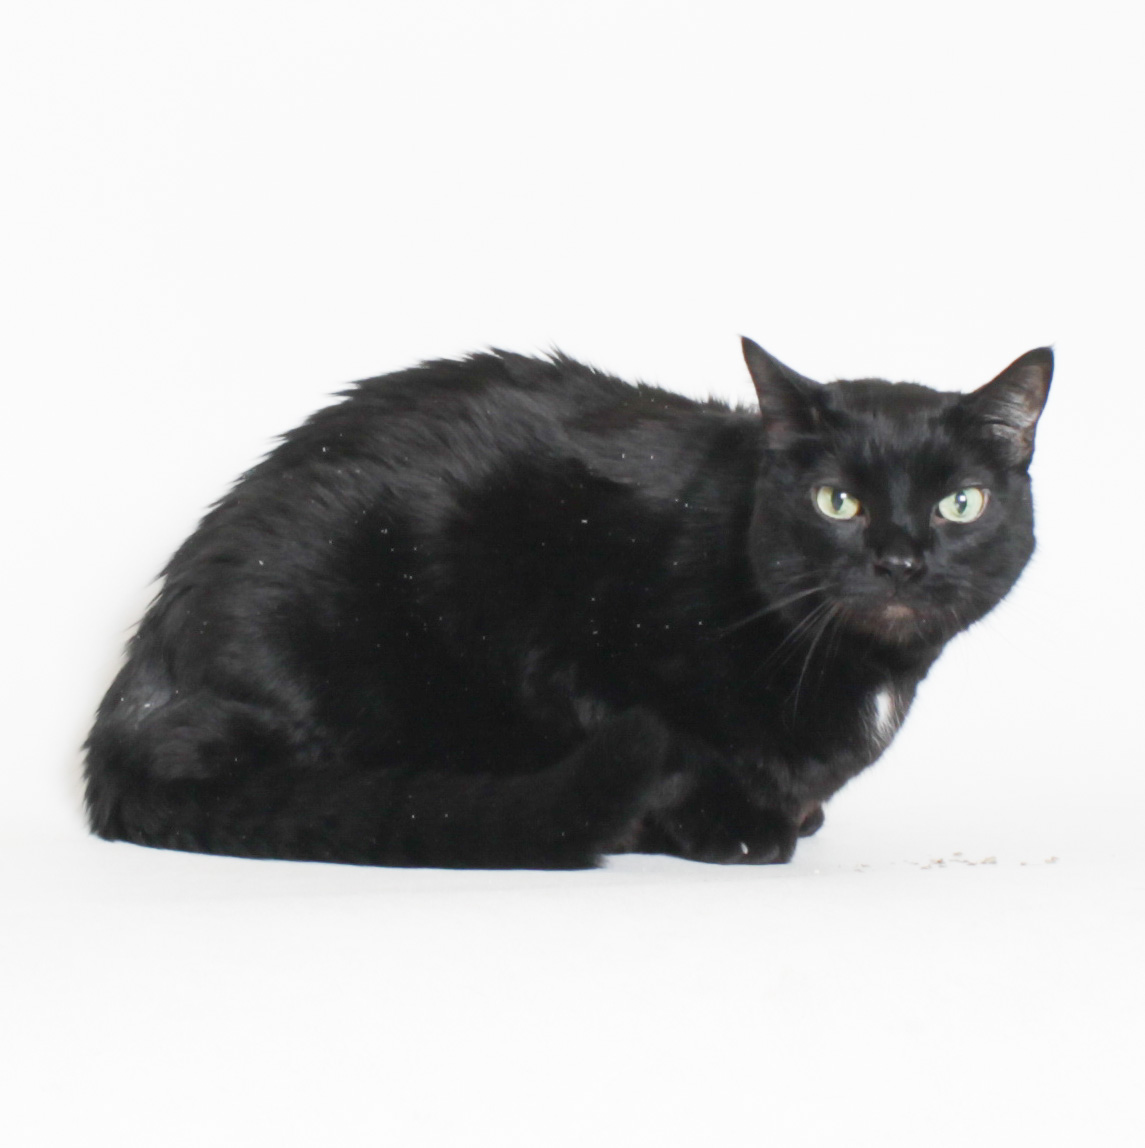 Meow HSTC Pet of the week 10/5/2018